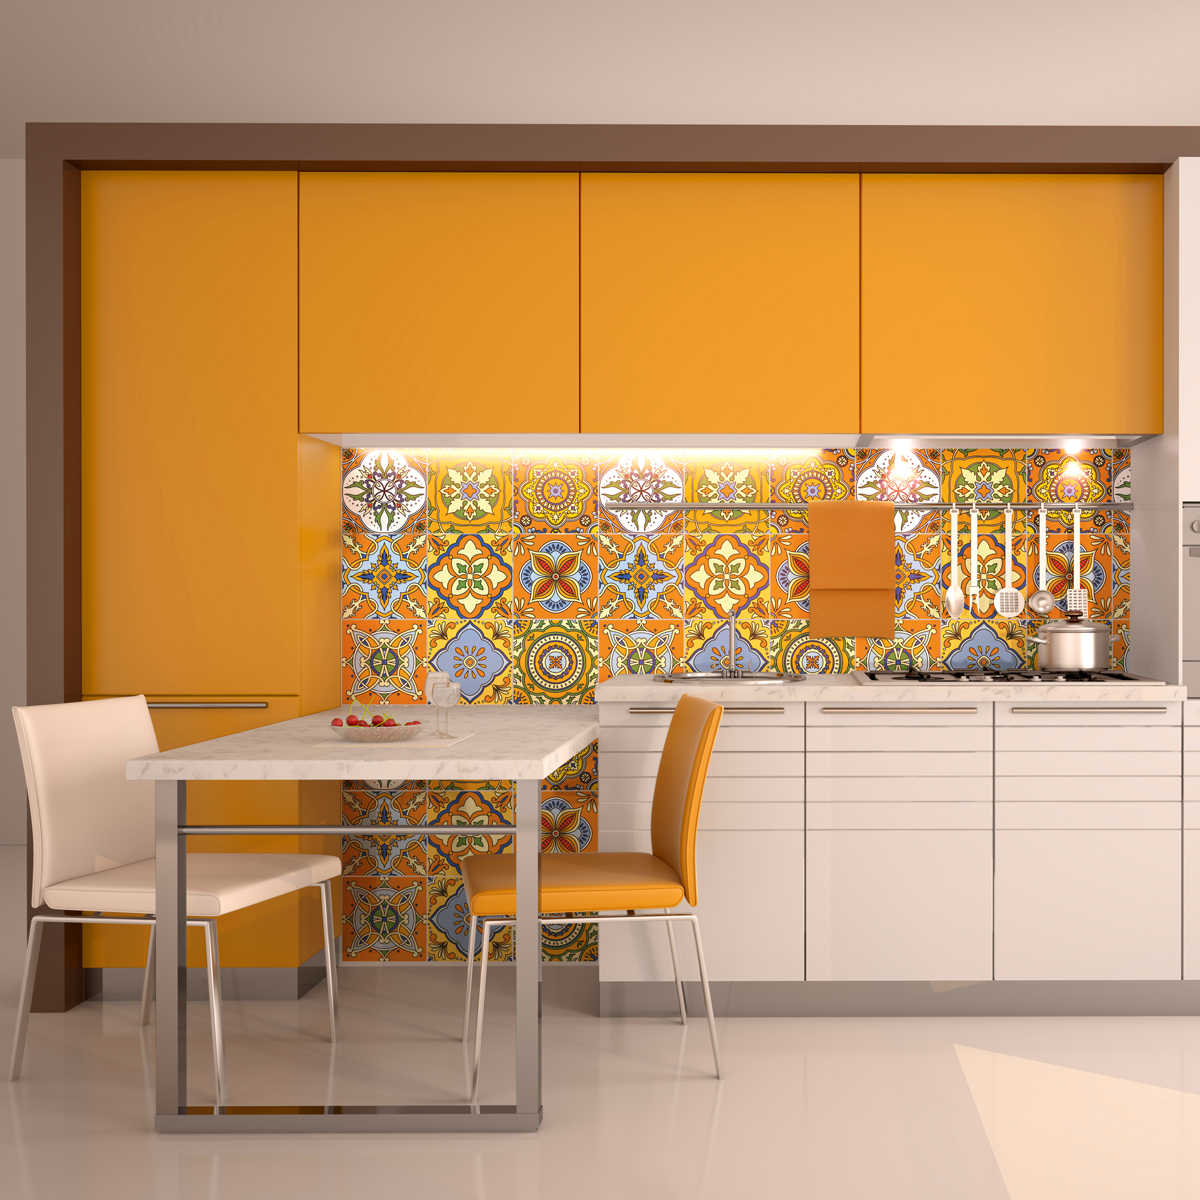 9 stickers carreaux de ciment de quito cuisine. Black Bedroom Furniture Sets. Home Design Ideas